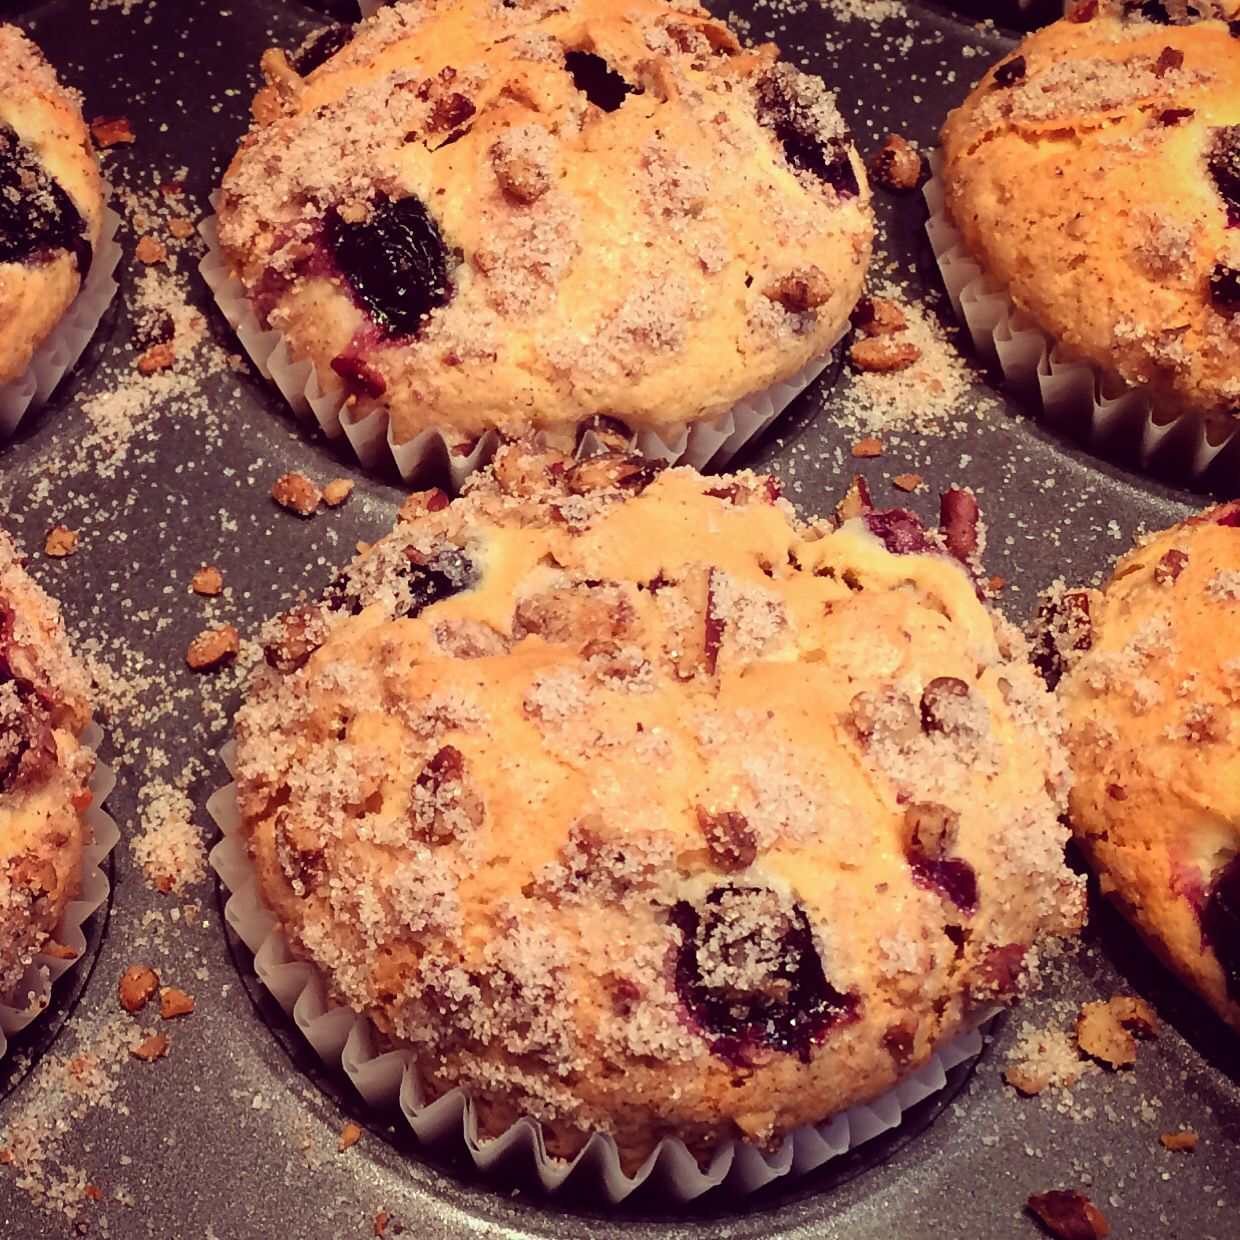 #Blueberry #muffins with #cinnamon #streusel